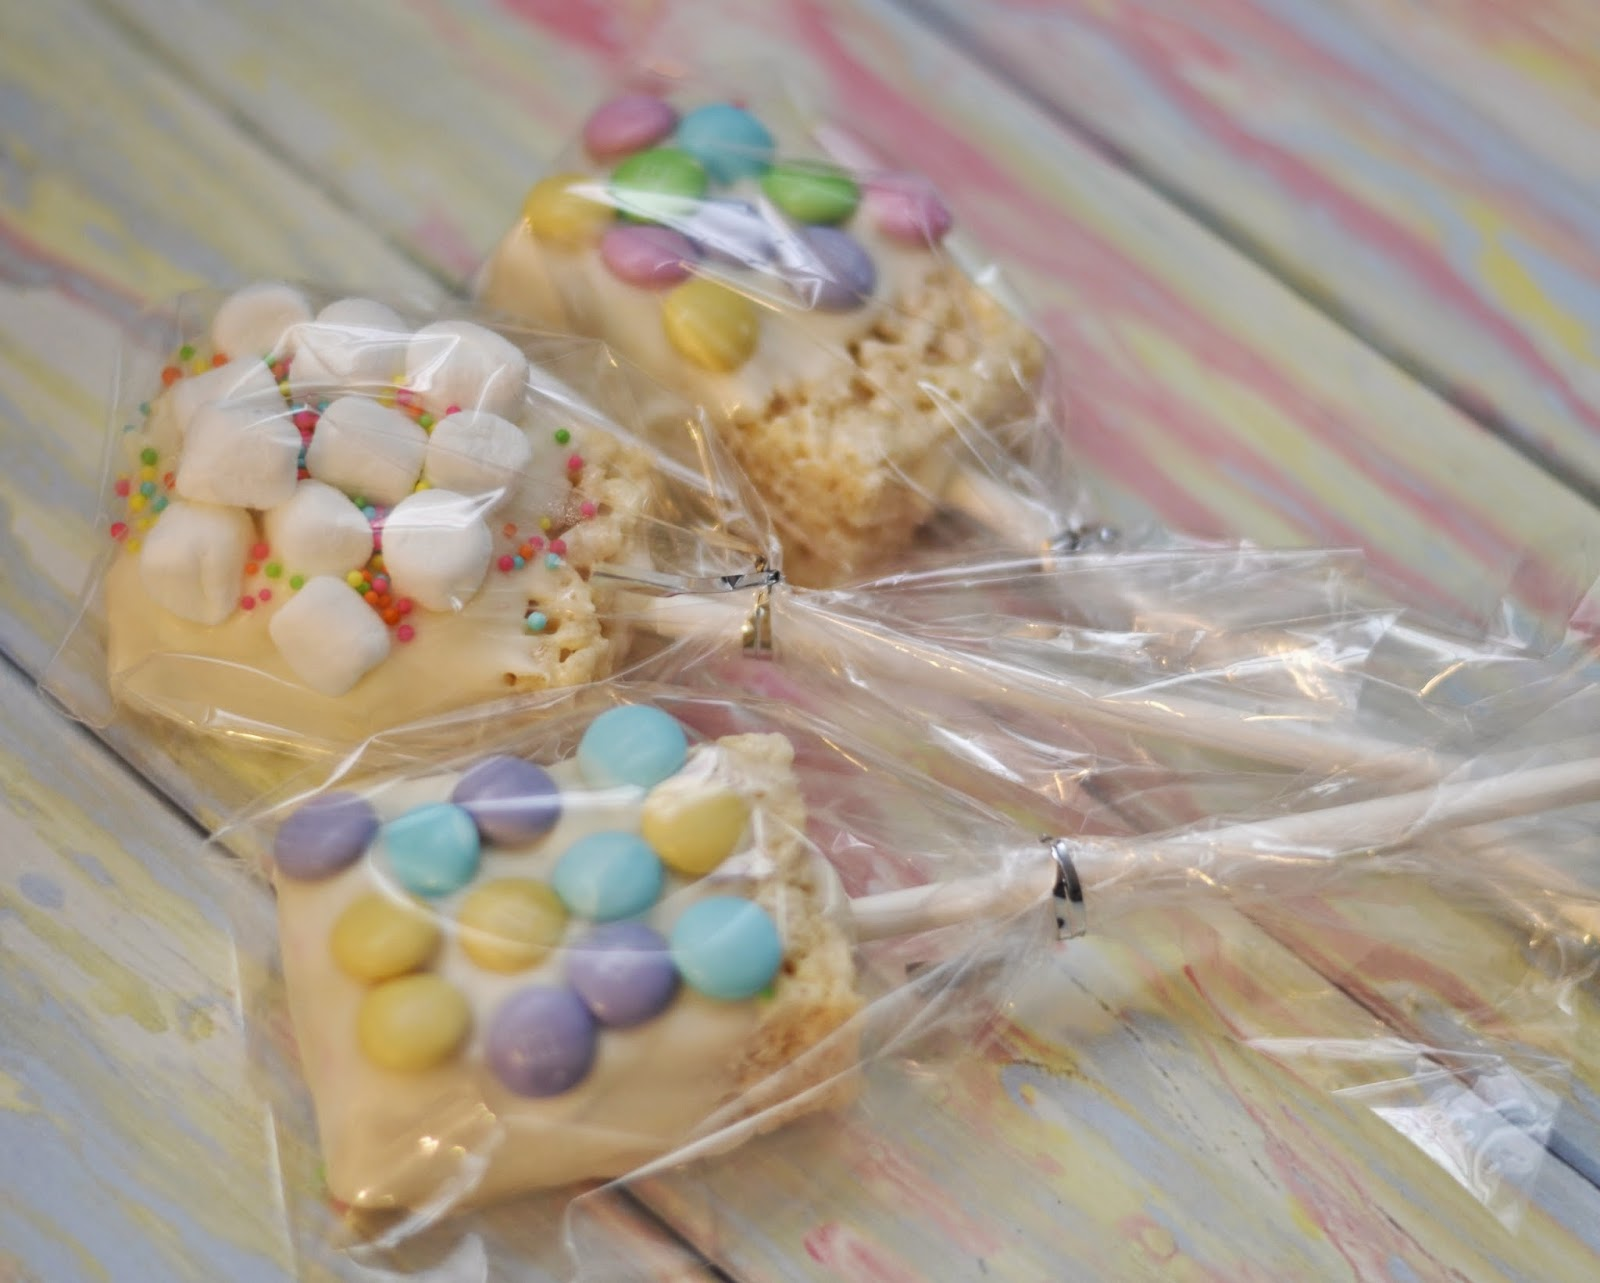 afternoon pick-me-up, mood lift, afternoon treat, fun snack, snack, fun treat, mood booster, feel-good treat, chocolate covered rice krispies, rice krispie pops, easy desserts for spring